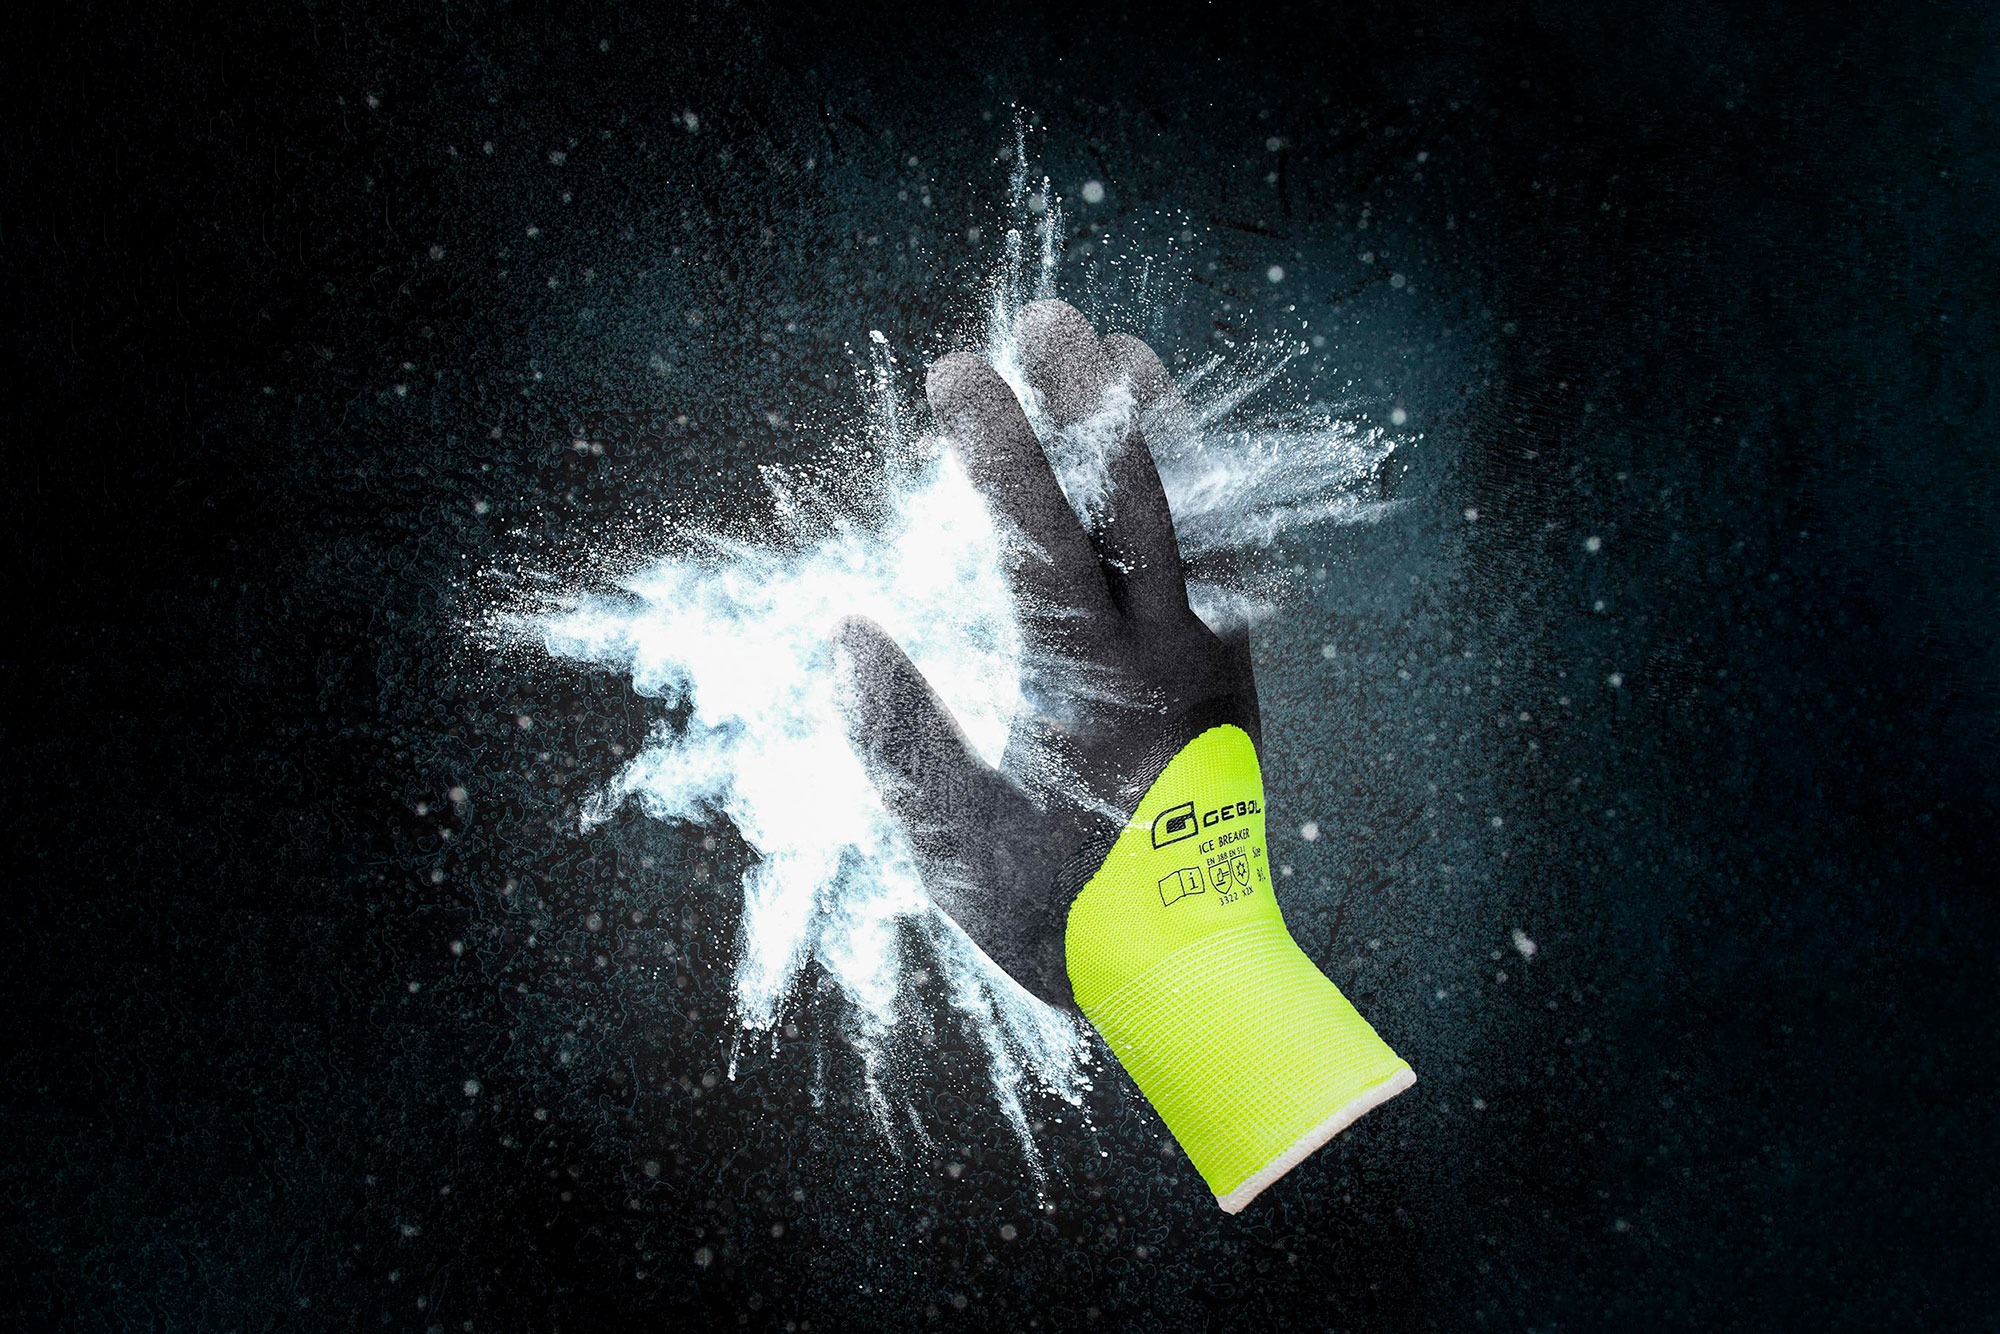 work glove product photography produktfotografie flap photography philipp greindl